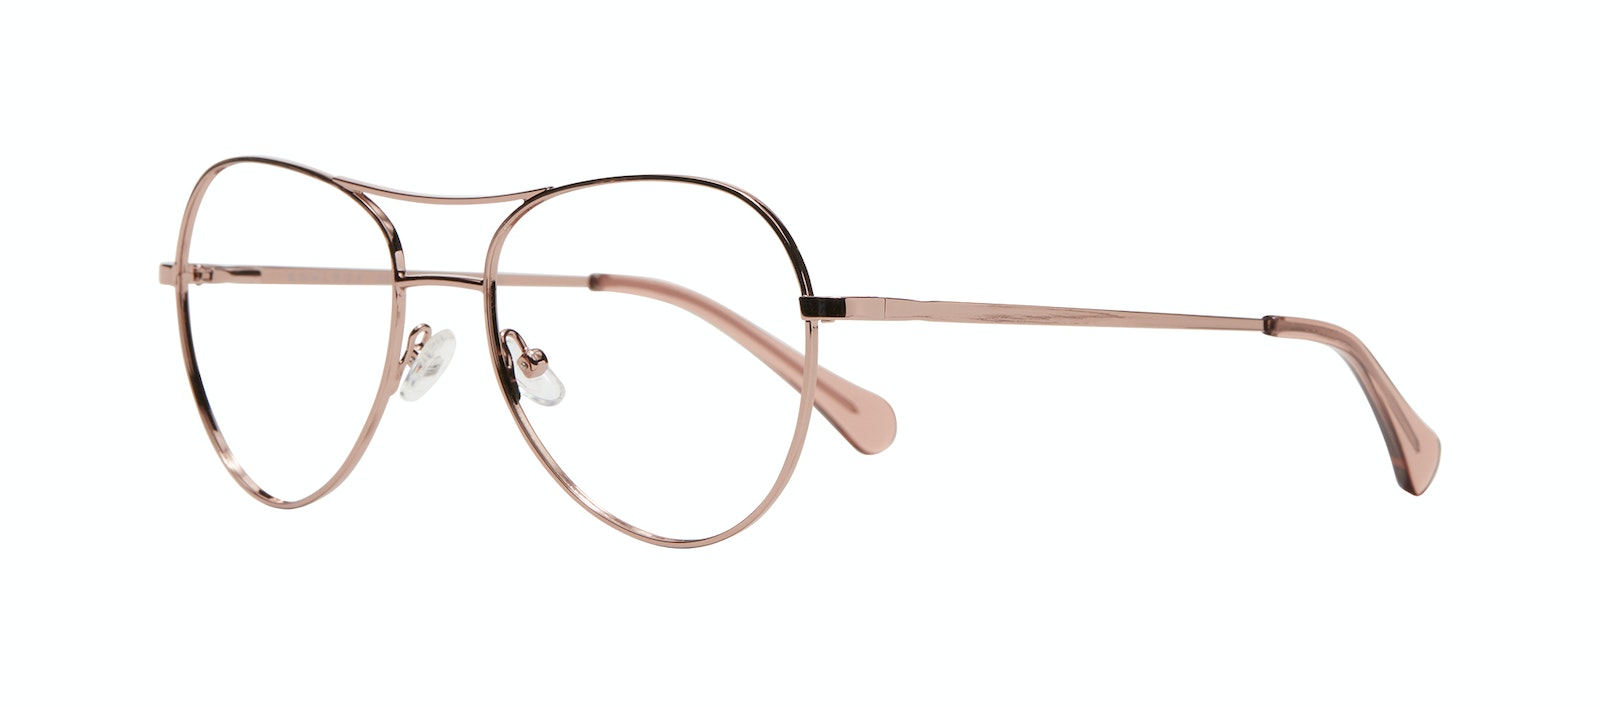 Affordable Fashion Glasses Aviator Eyeglasses Women Want M Rose Gold Tilt